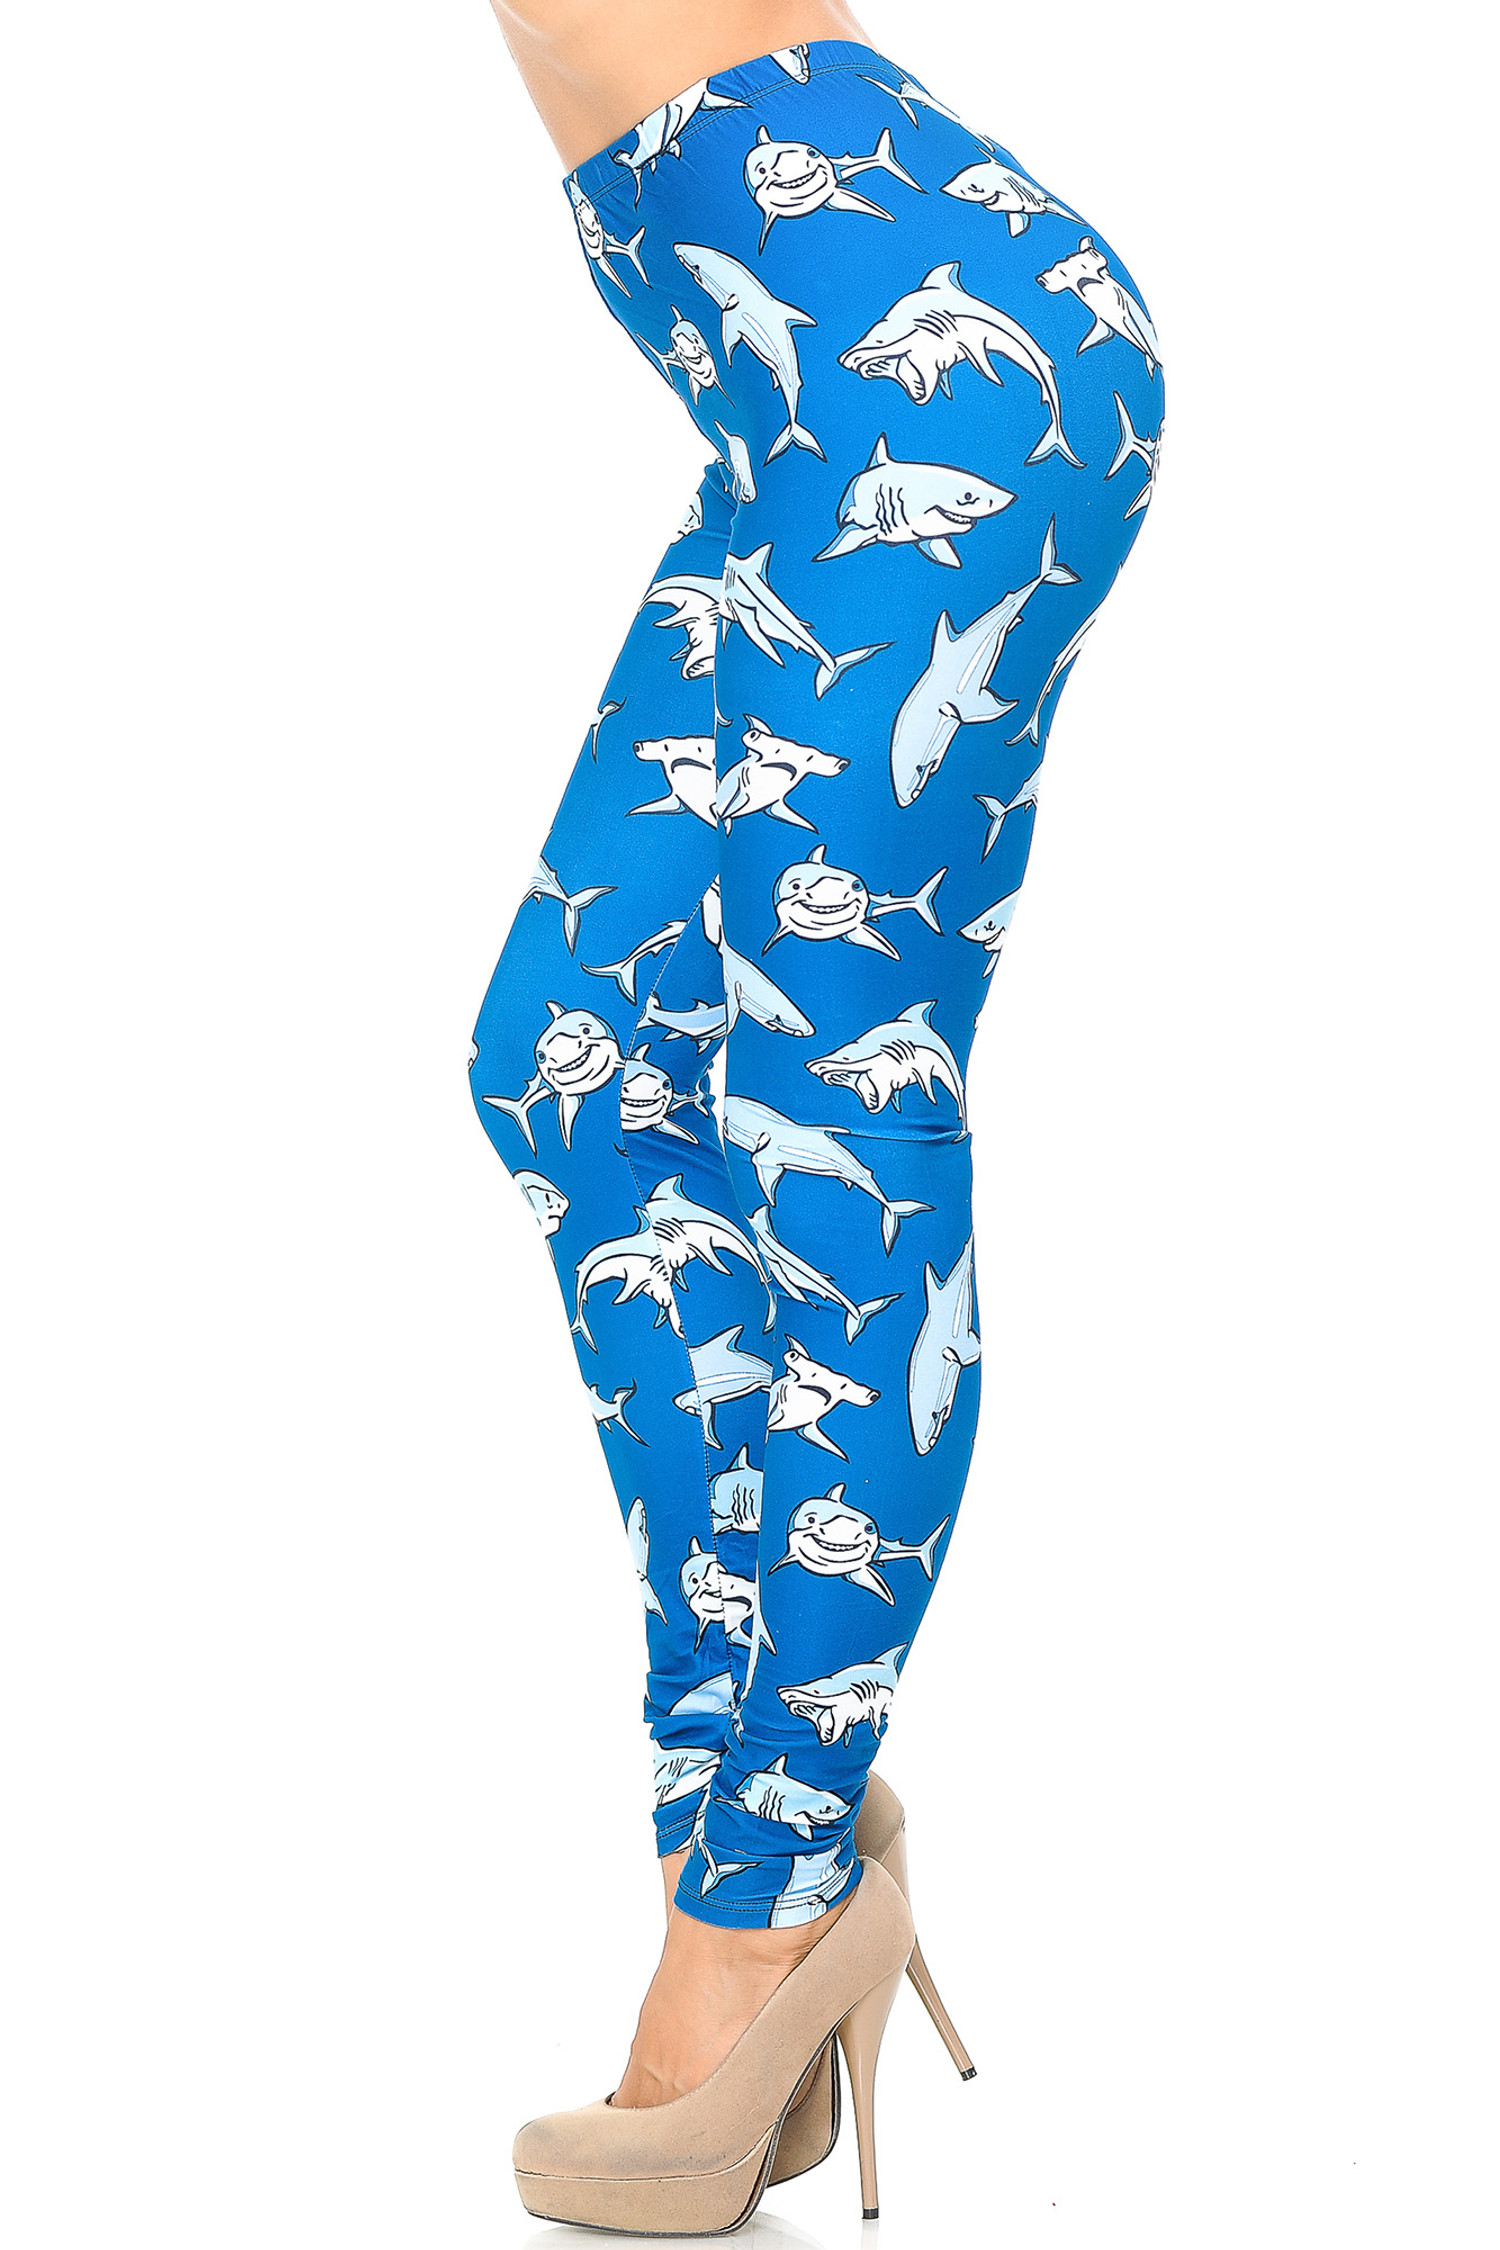 Creamy Soft Shark Leggings - USA Fashion™